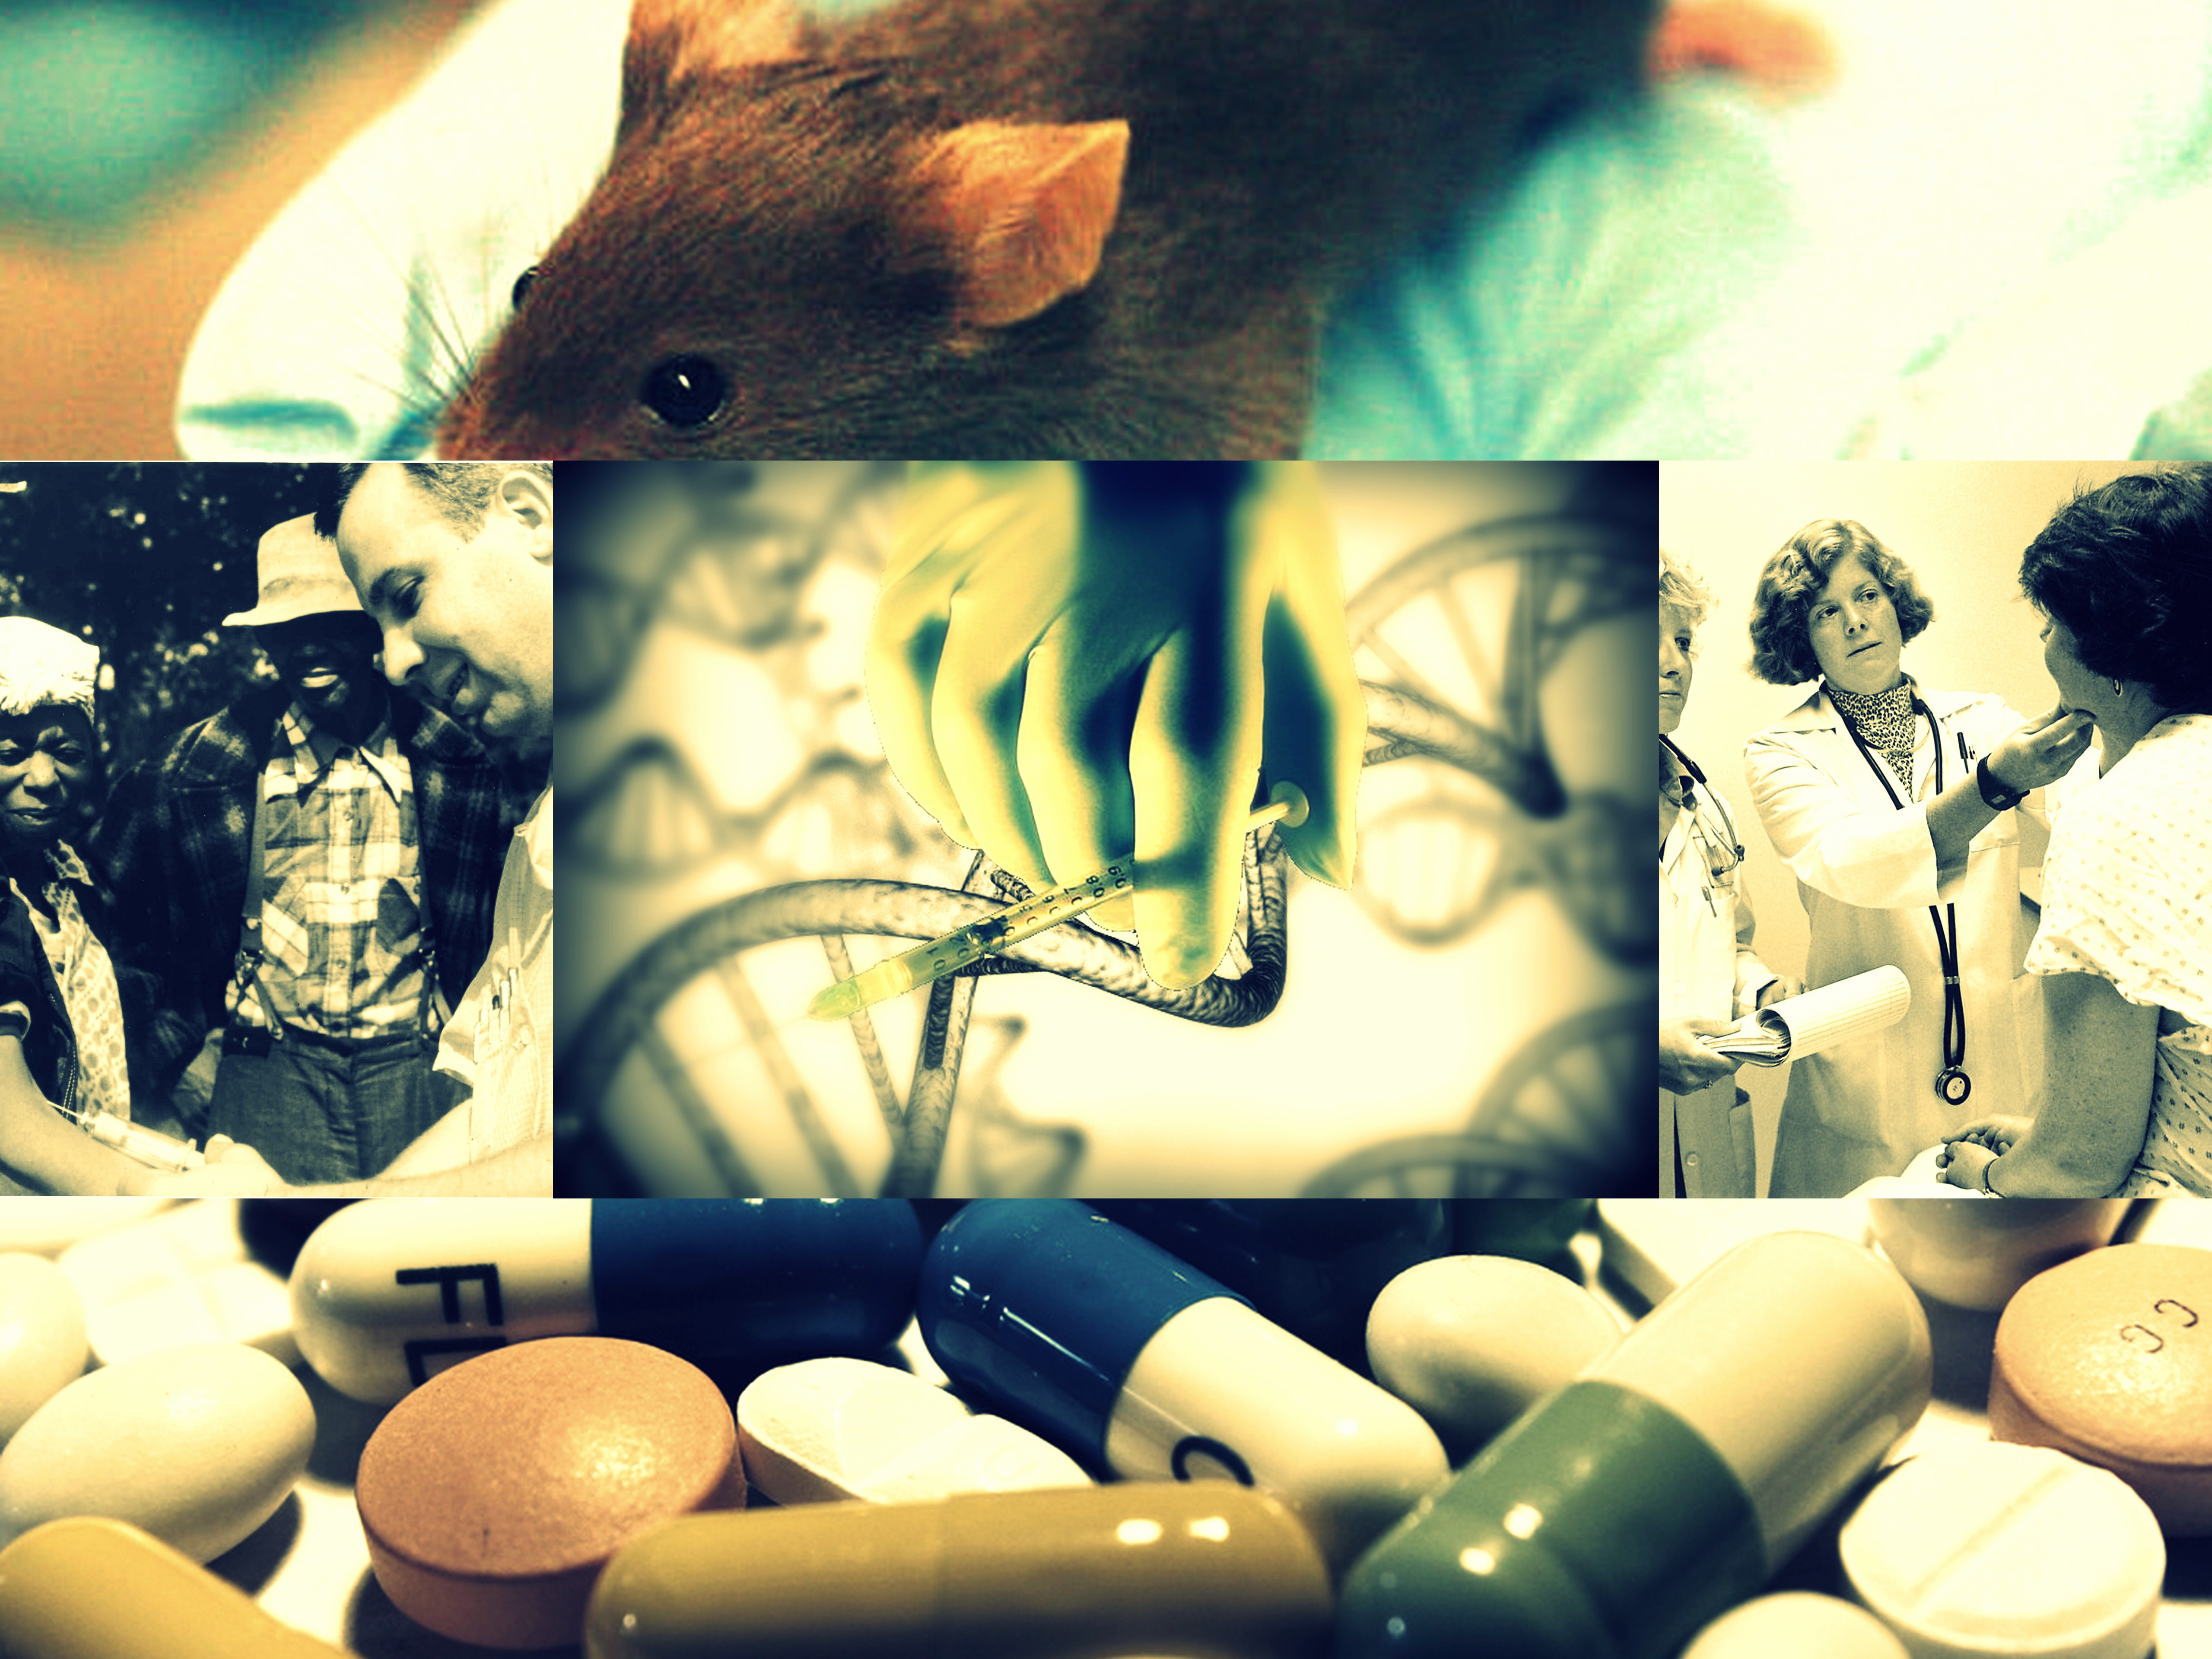 Guinea Pigs, Heroes & Desperate Patients: The History & Ethics of Human Research